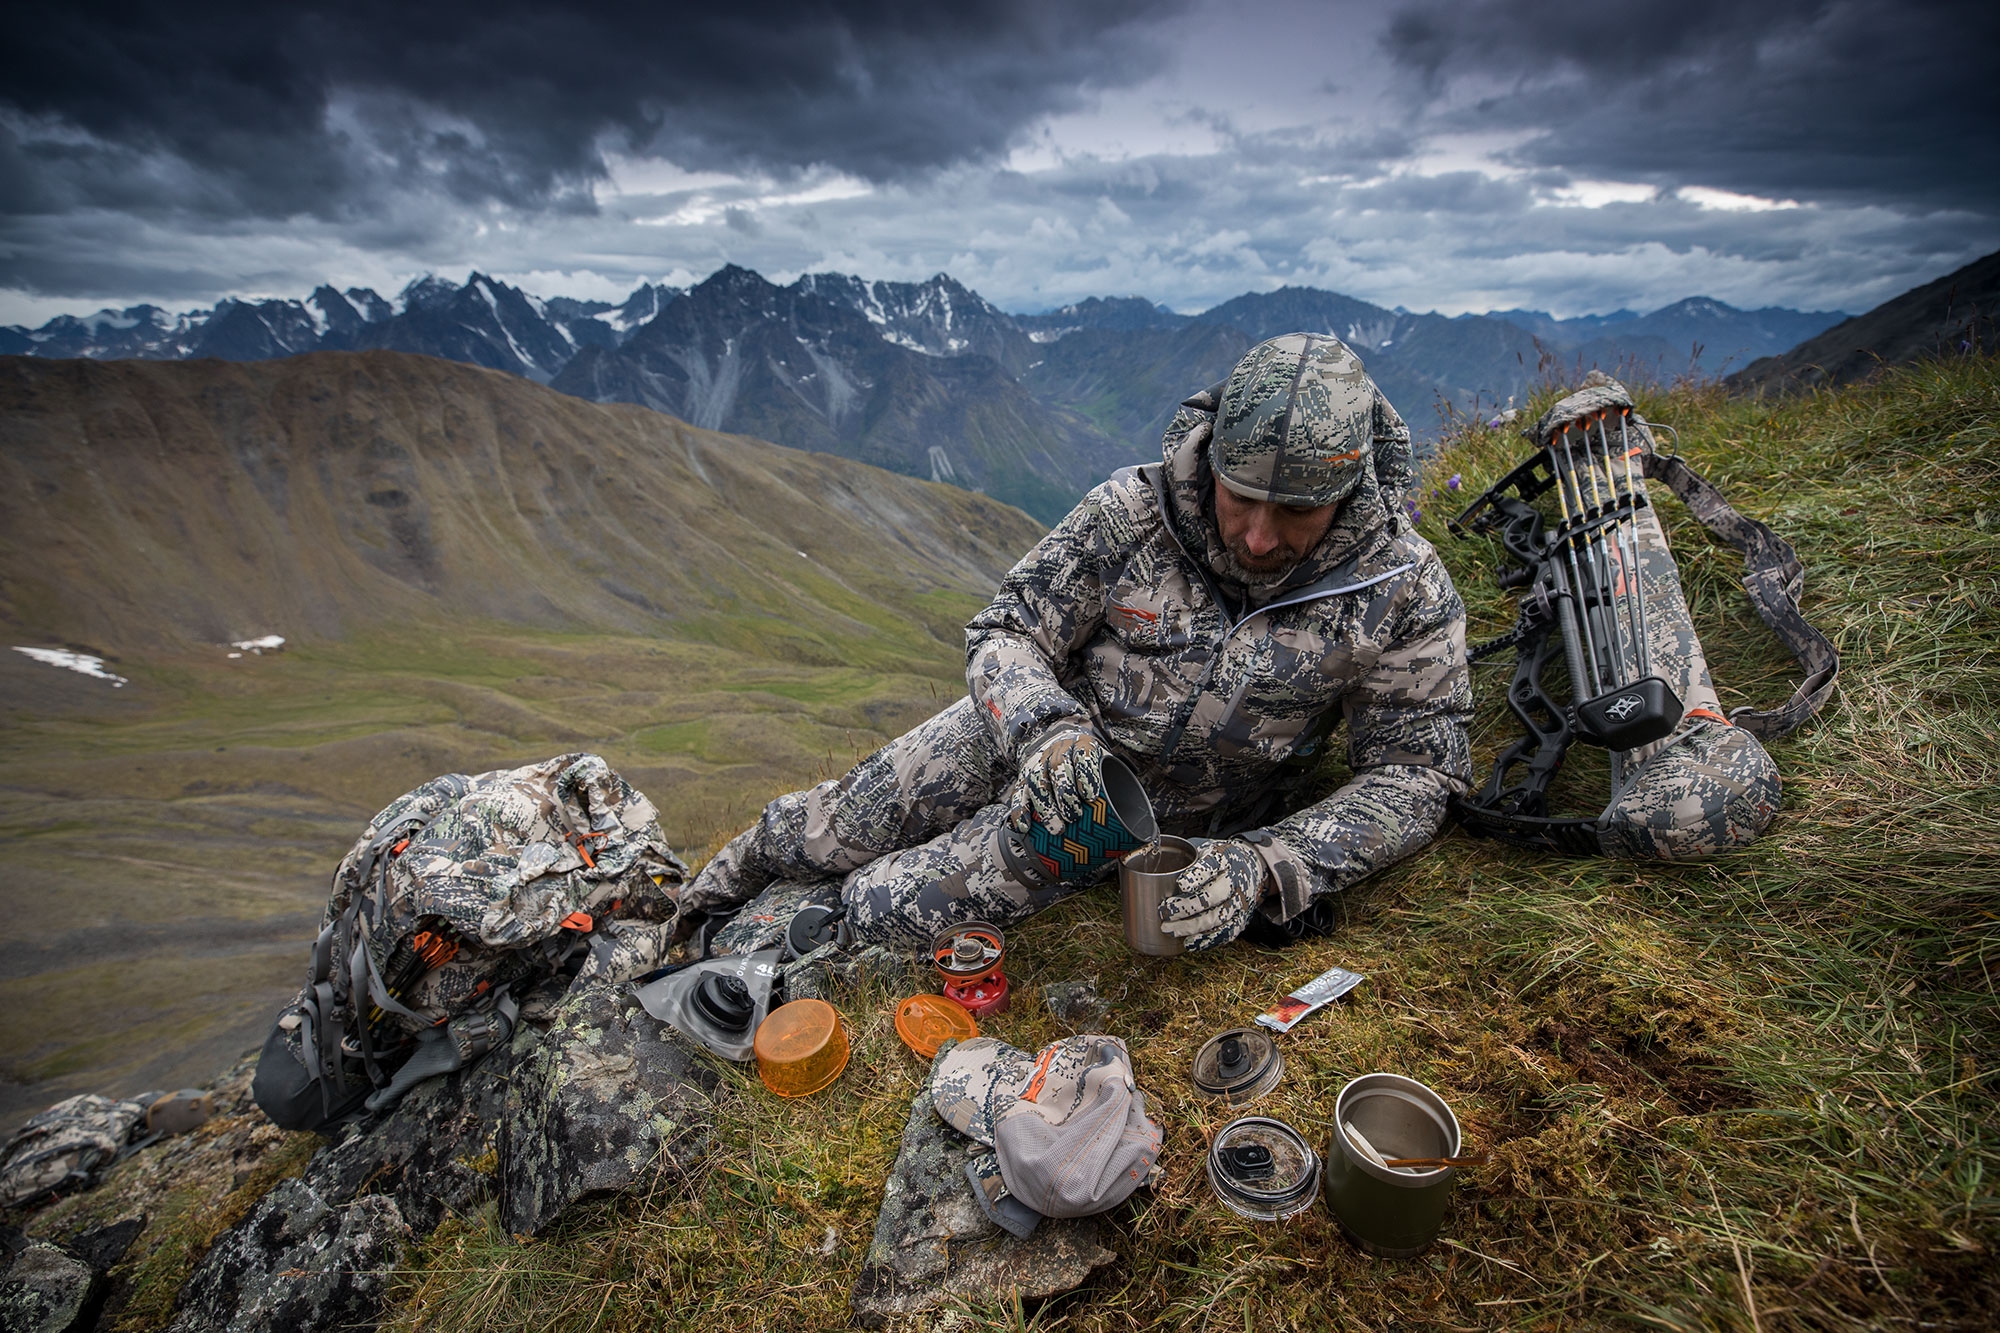 Hunter refuels on a mountainside.